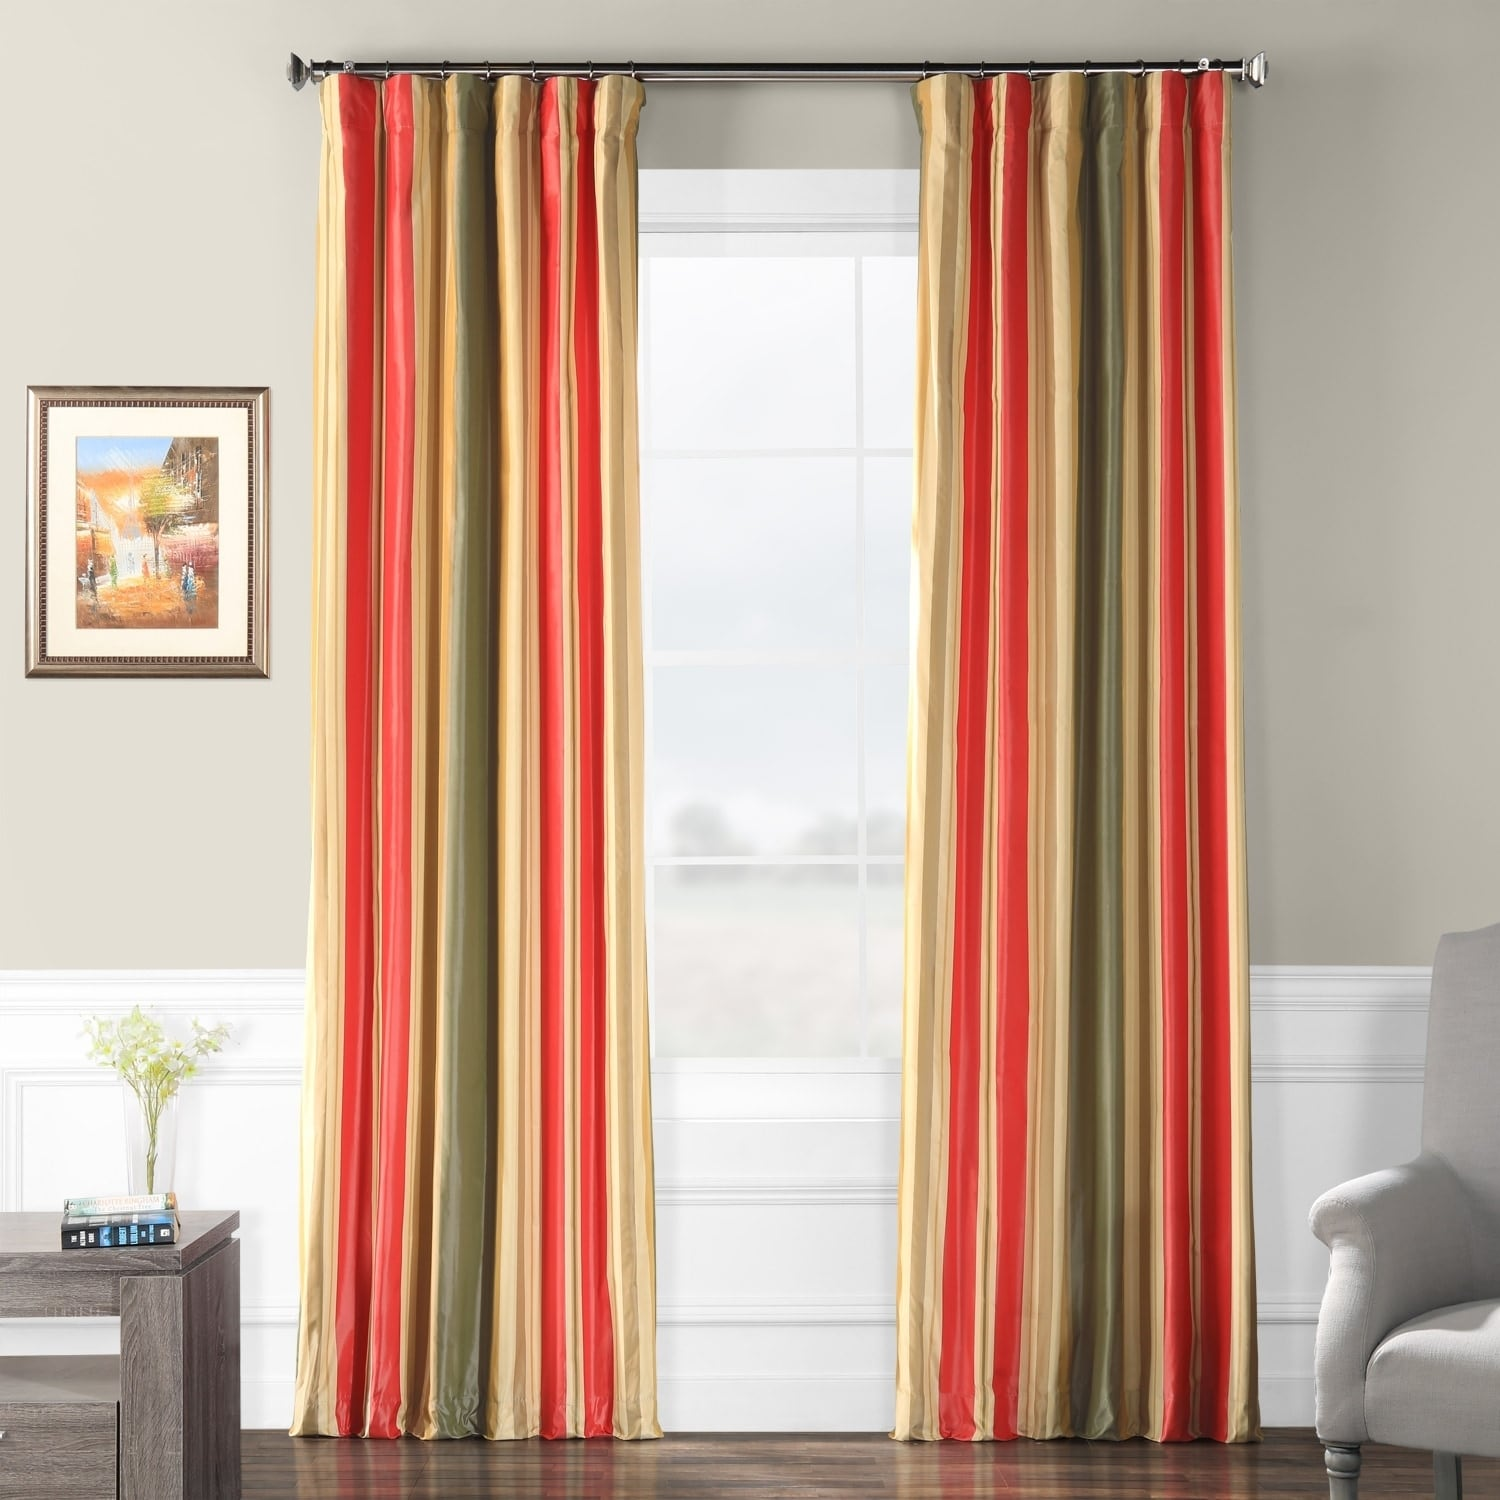 Faux Silk Curtains Details About Exclusive Fabrics Orleans Faux Silk Taffeta Stripe Curtain